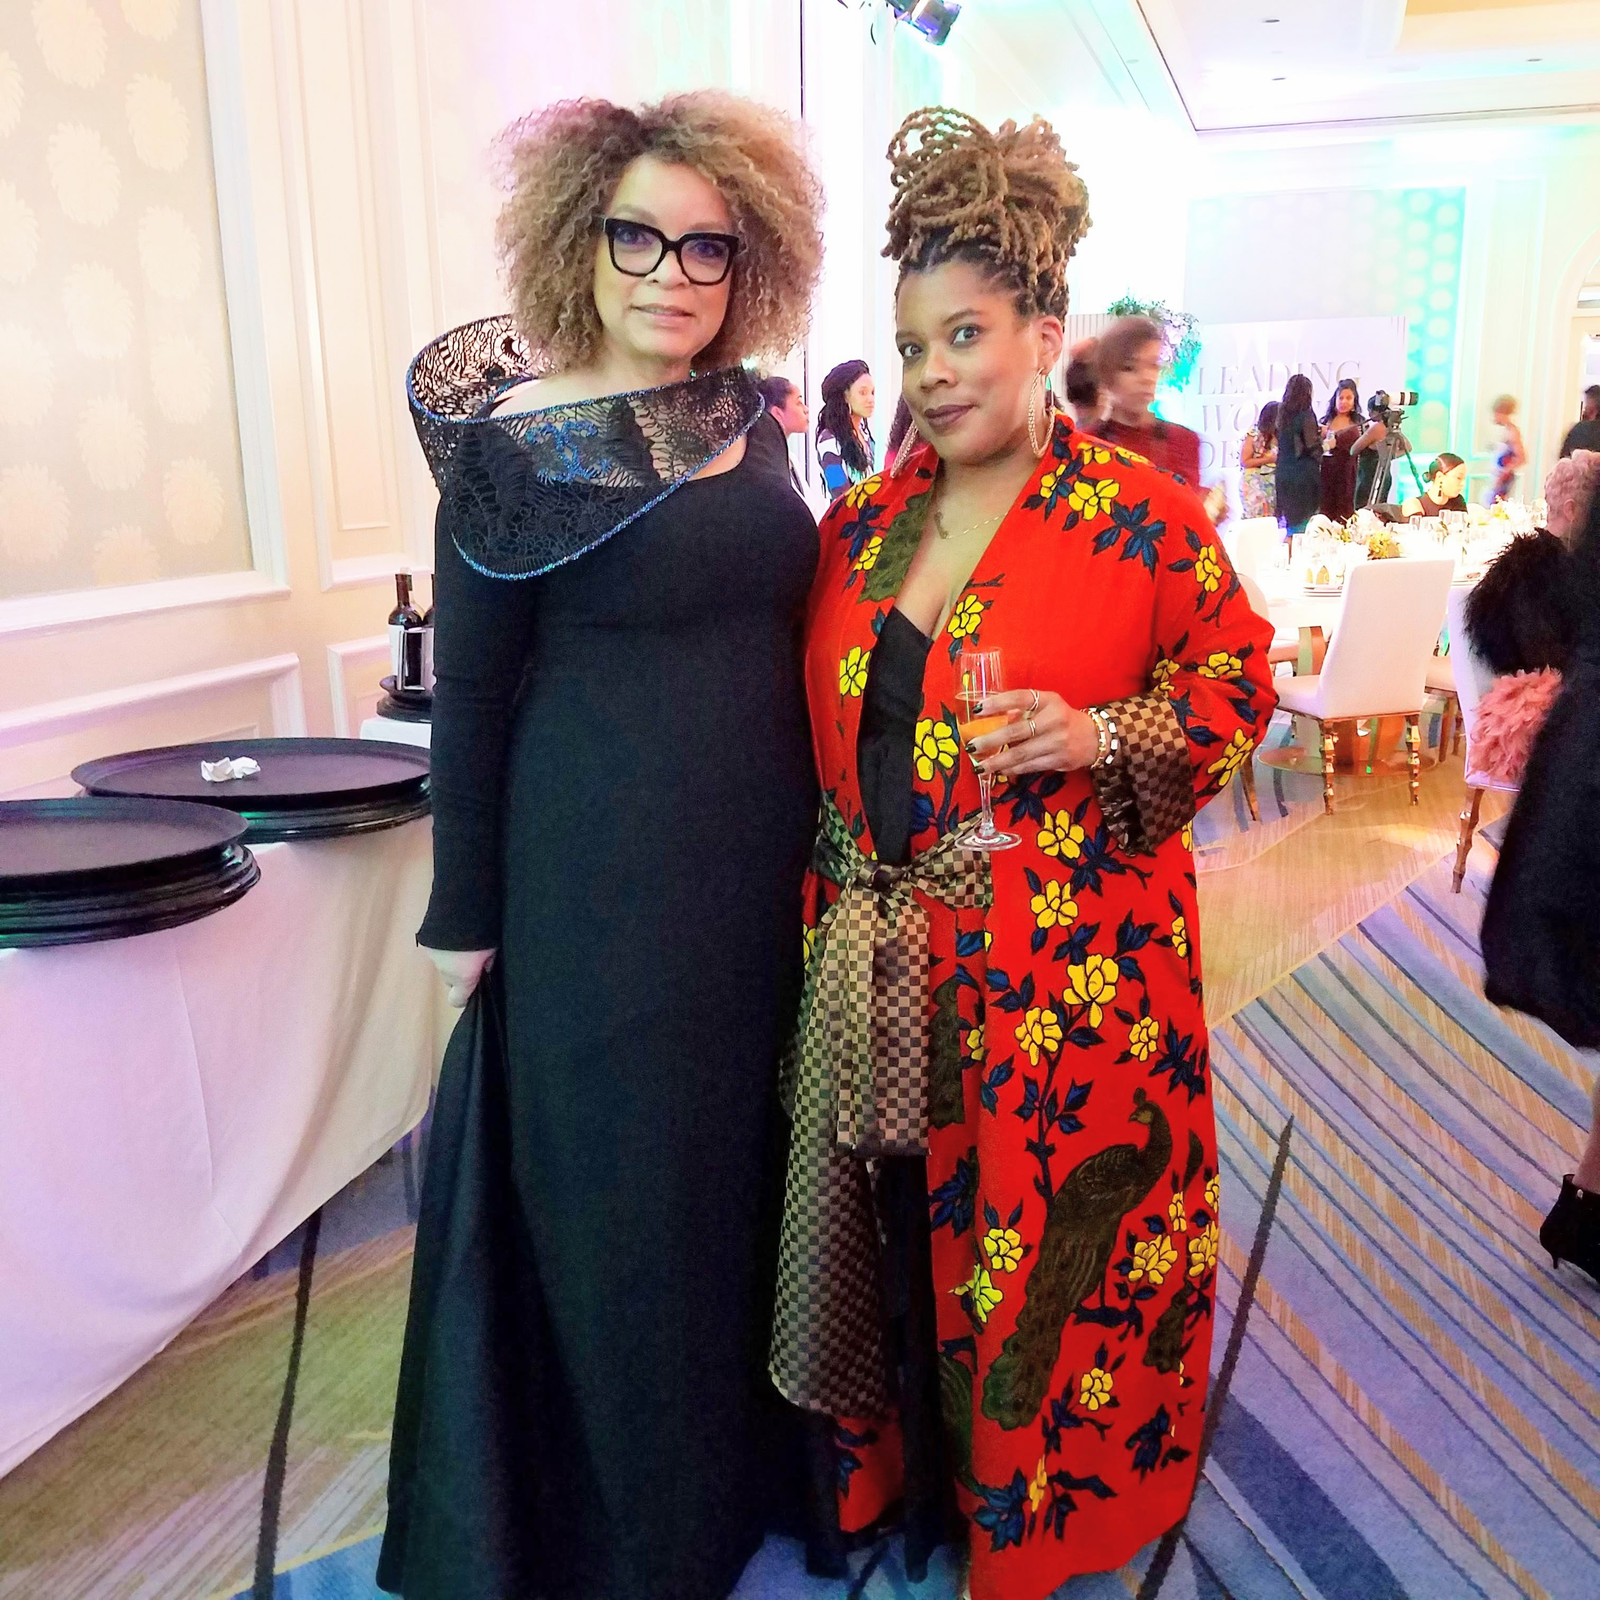 Oscar-winner Ruth Carter, left, and I pose at the annual Leading Women Defined retreat in California. I'm wearing one of Junny's caftans.